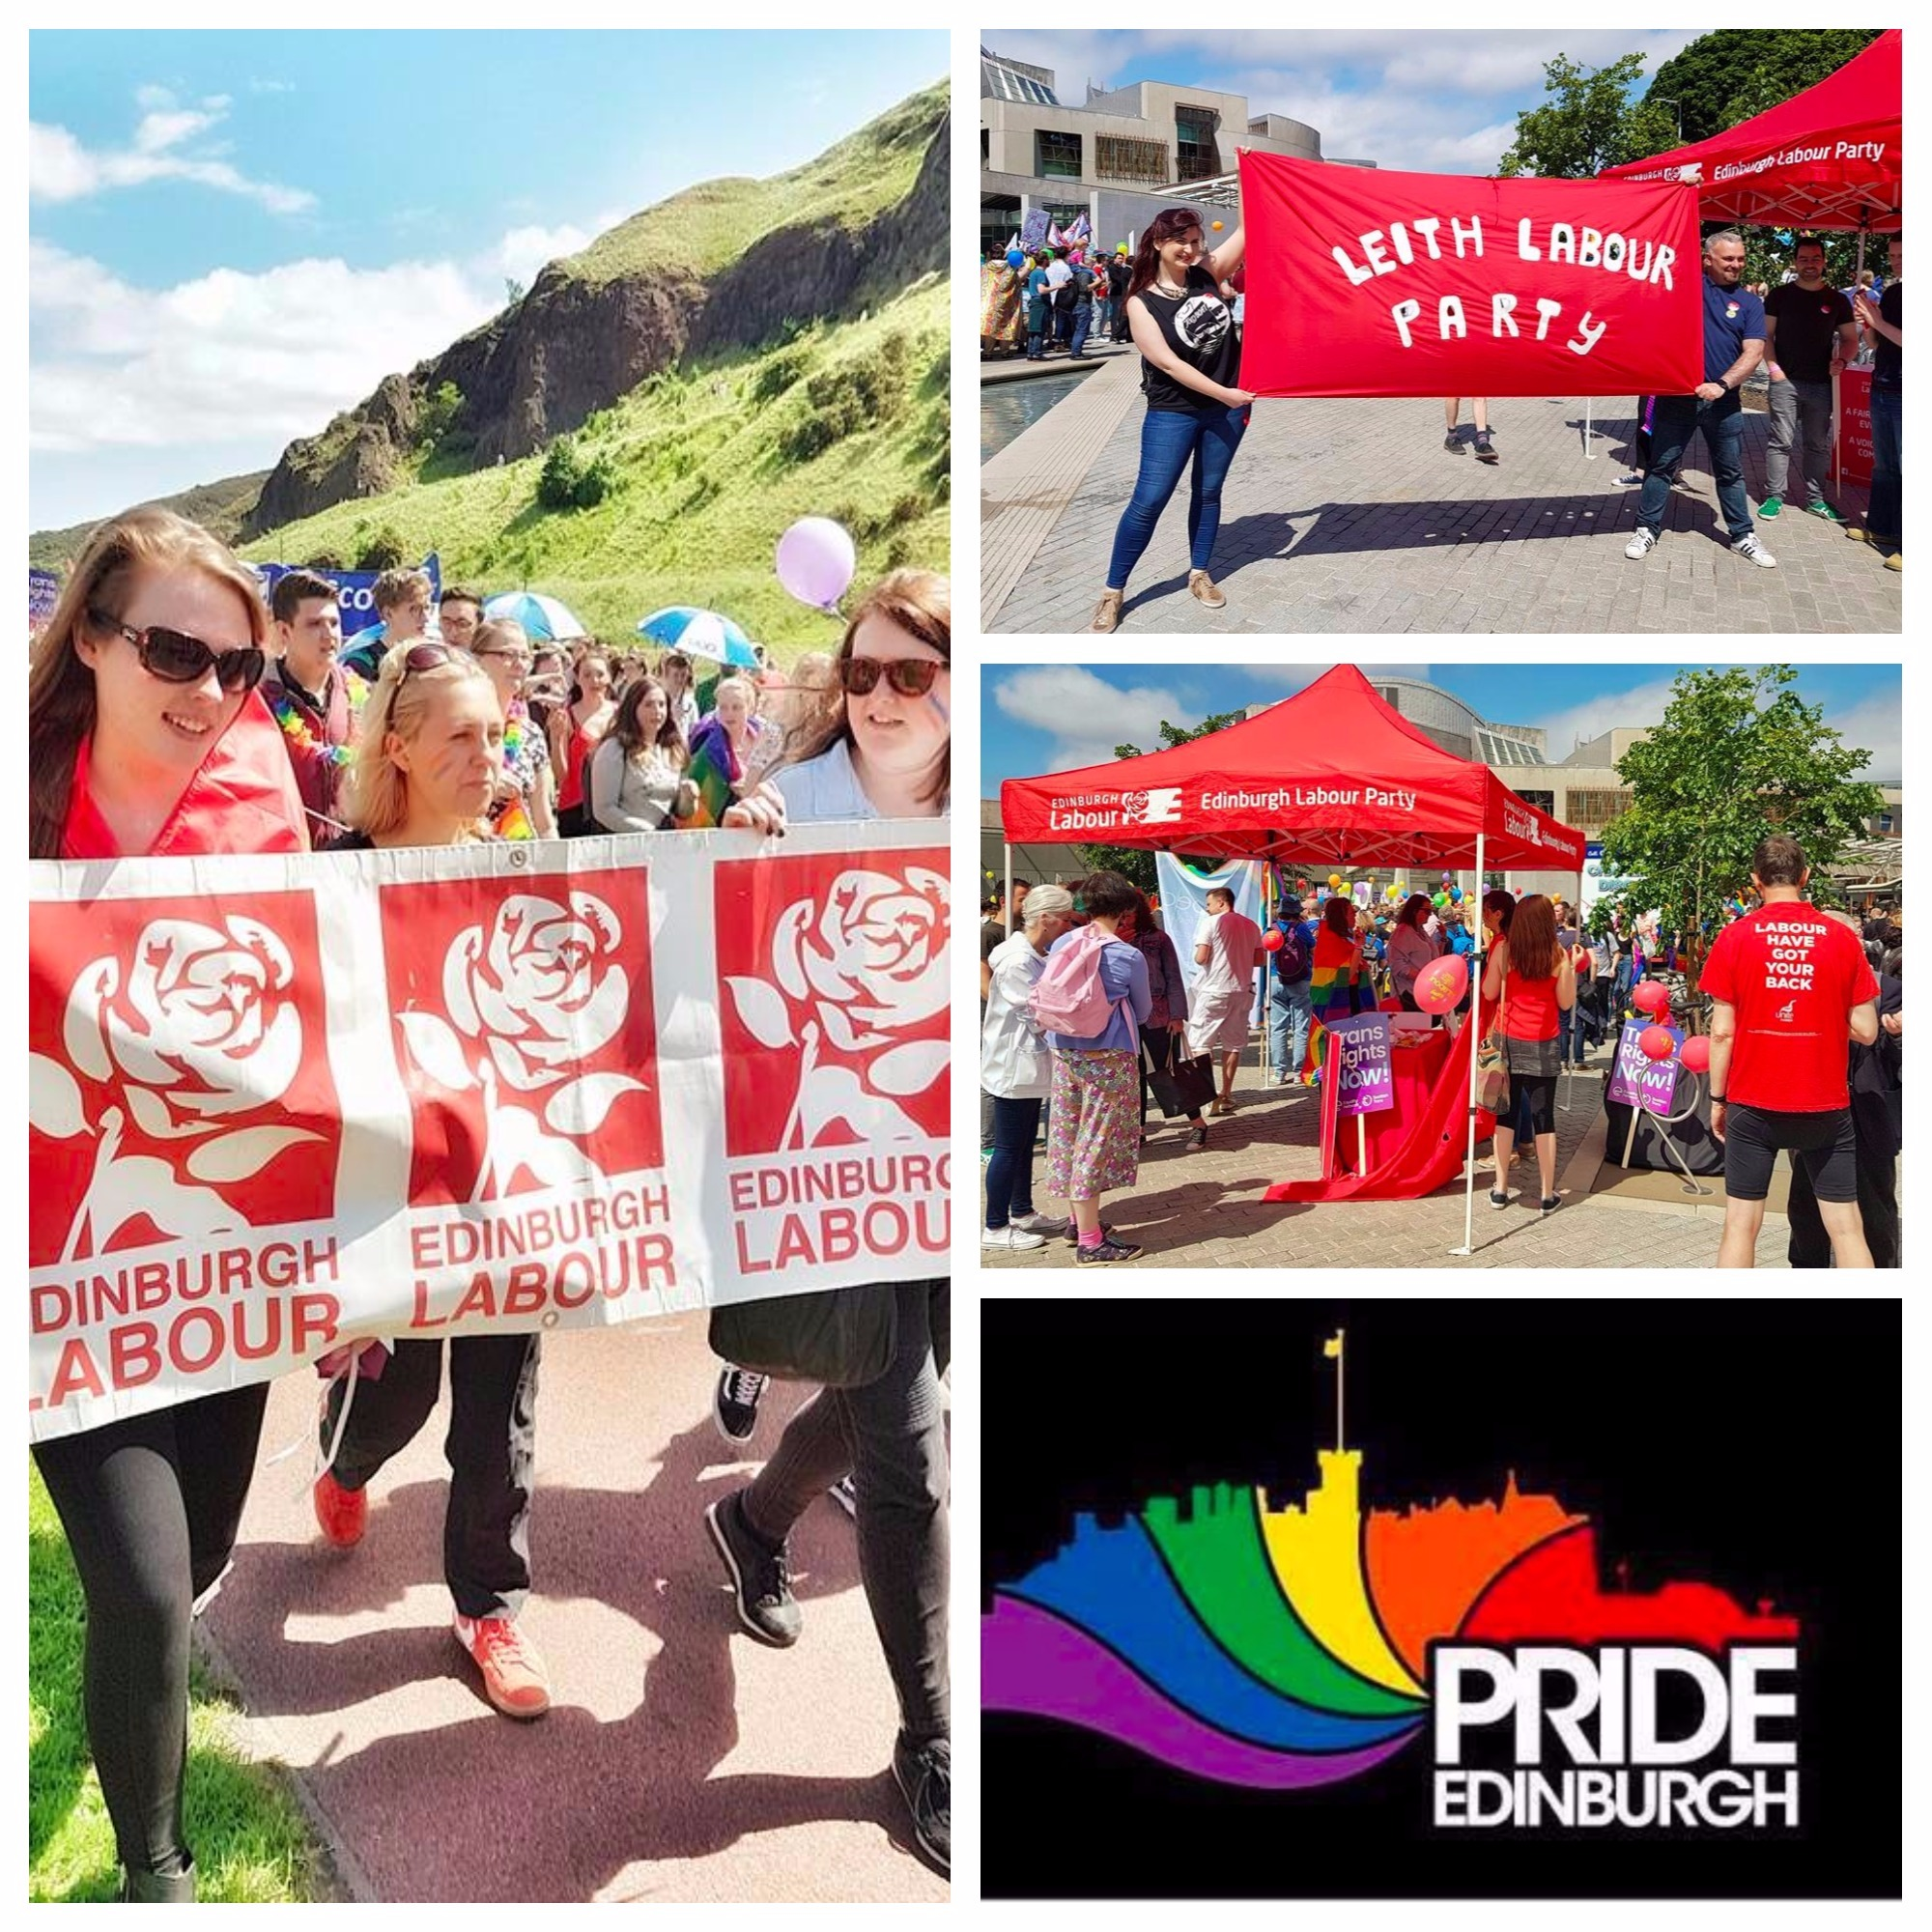 pride_(1).jpg_collage.jpg